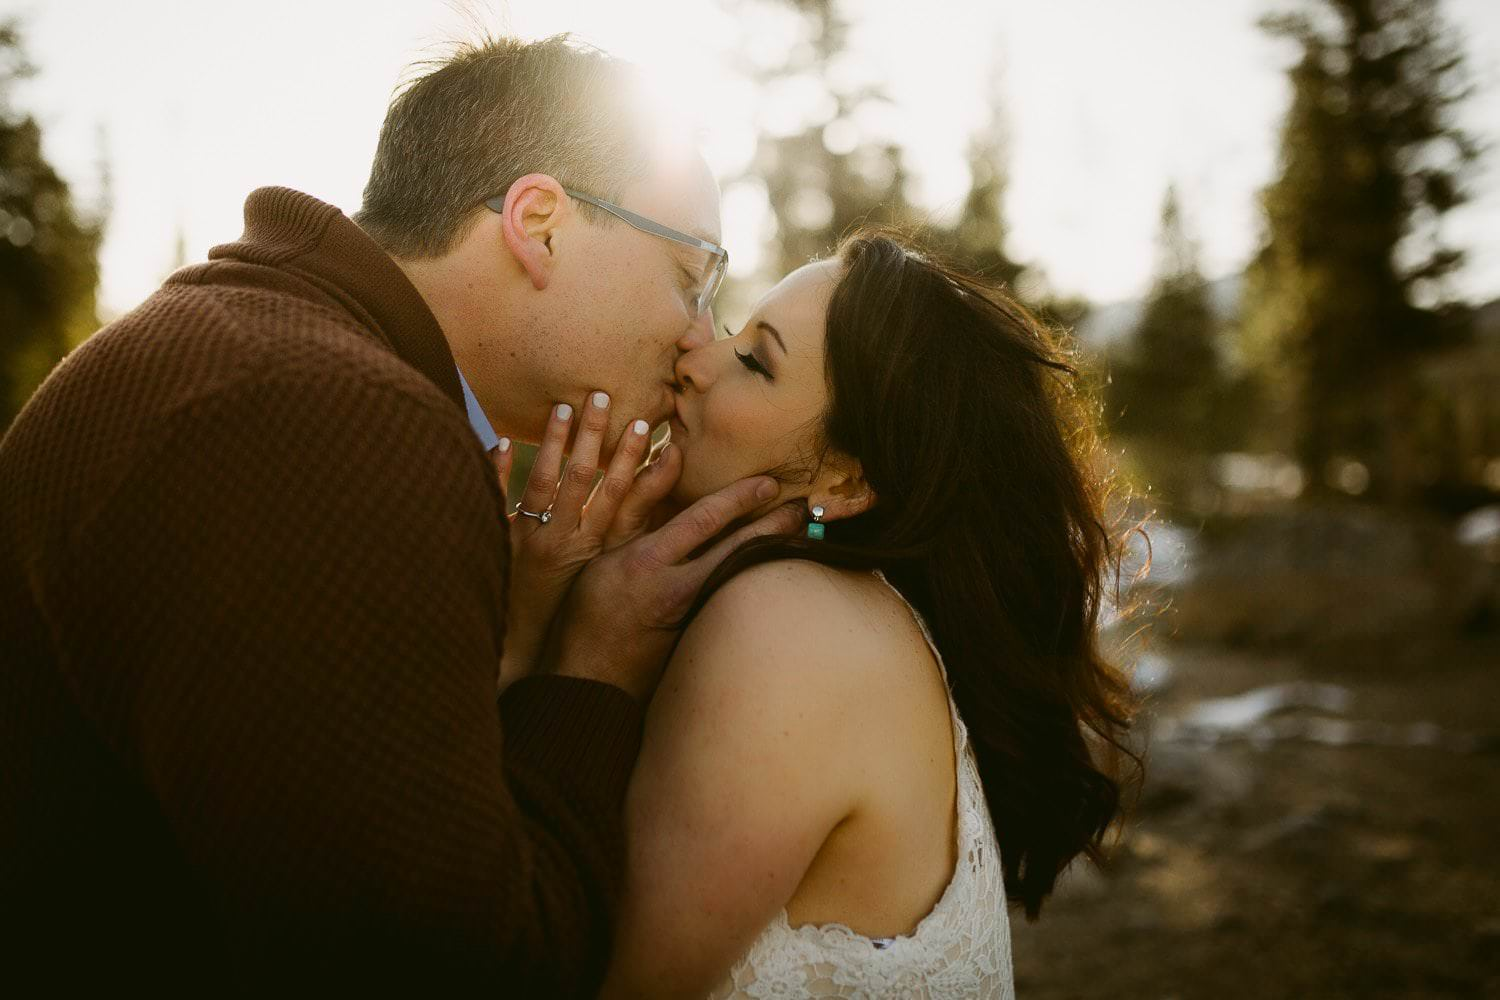 ROCKY MOUNTAIN NATIONAL PARK HIKING ELOPEMENTS I ADVENTURE DESTINATION ELOPEMENT PHOTOGRAPHER I SELF -SOLEMNIZING ELOPEMENT PHOTOGRAPHER I COLORADO INTIMATE WEDDINGS & ADVENTUROUS ELOPEMENT PHOTOGRAPHER I JUSTYNA E BUTLER